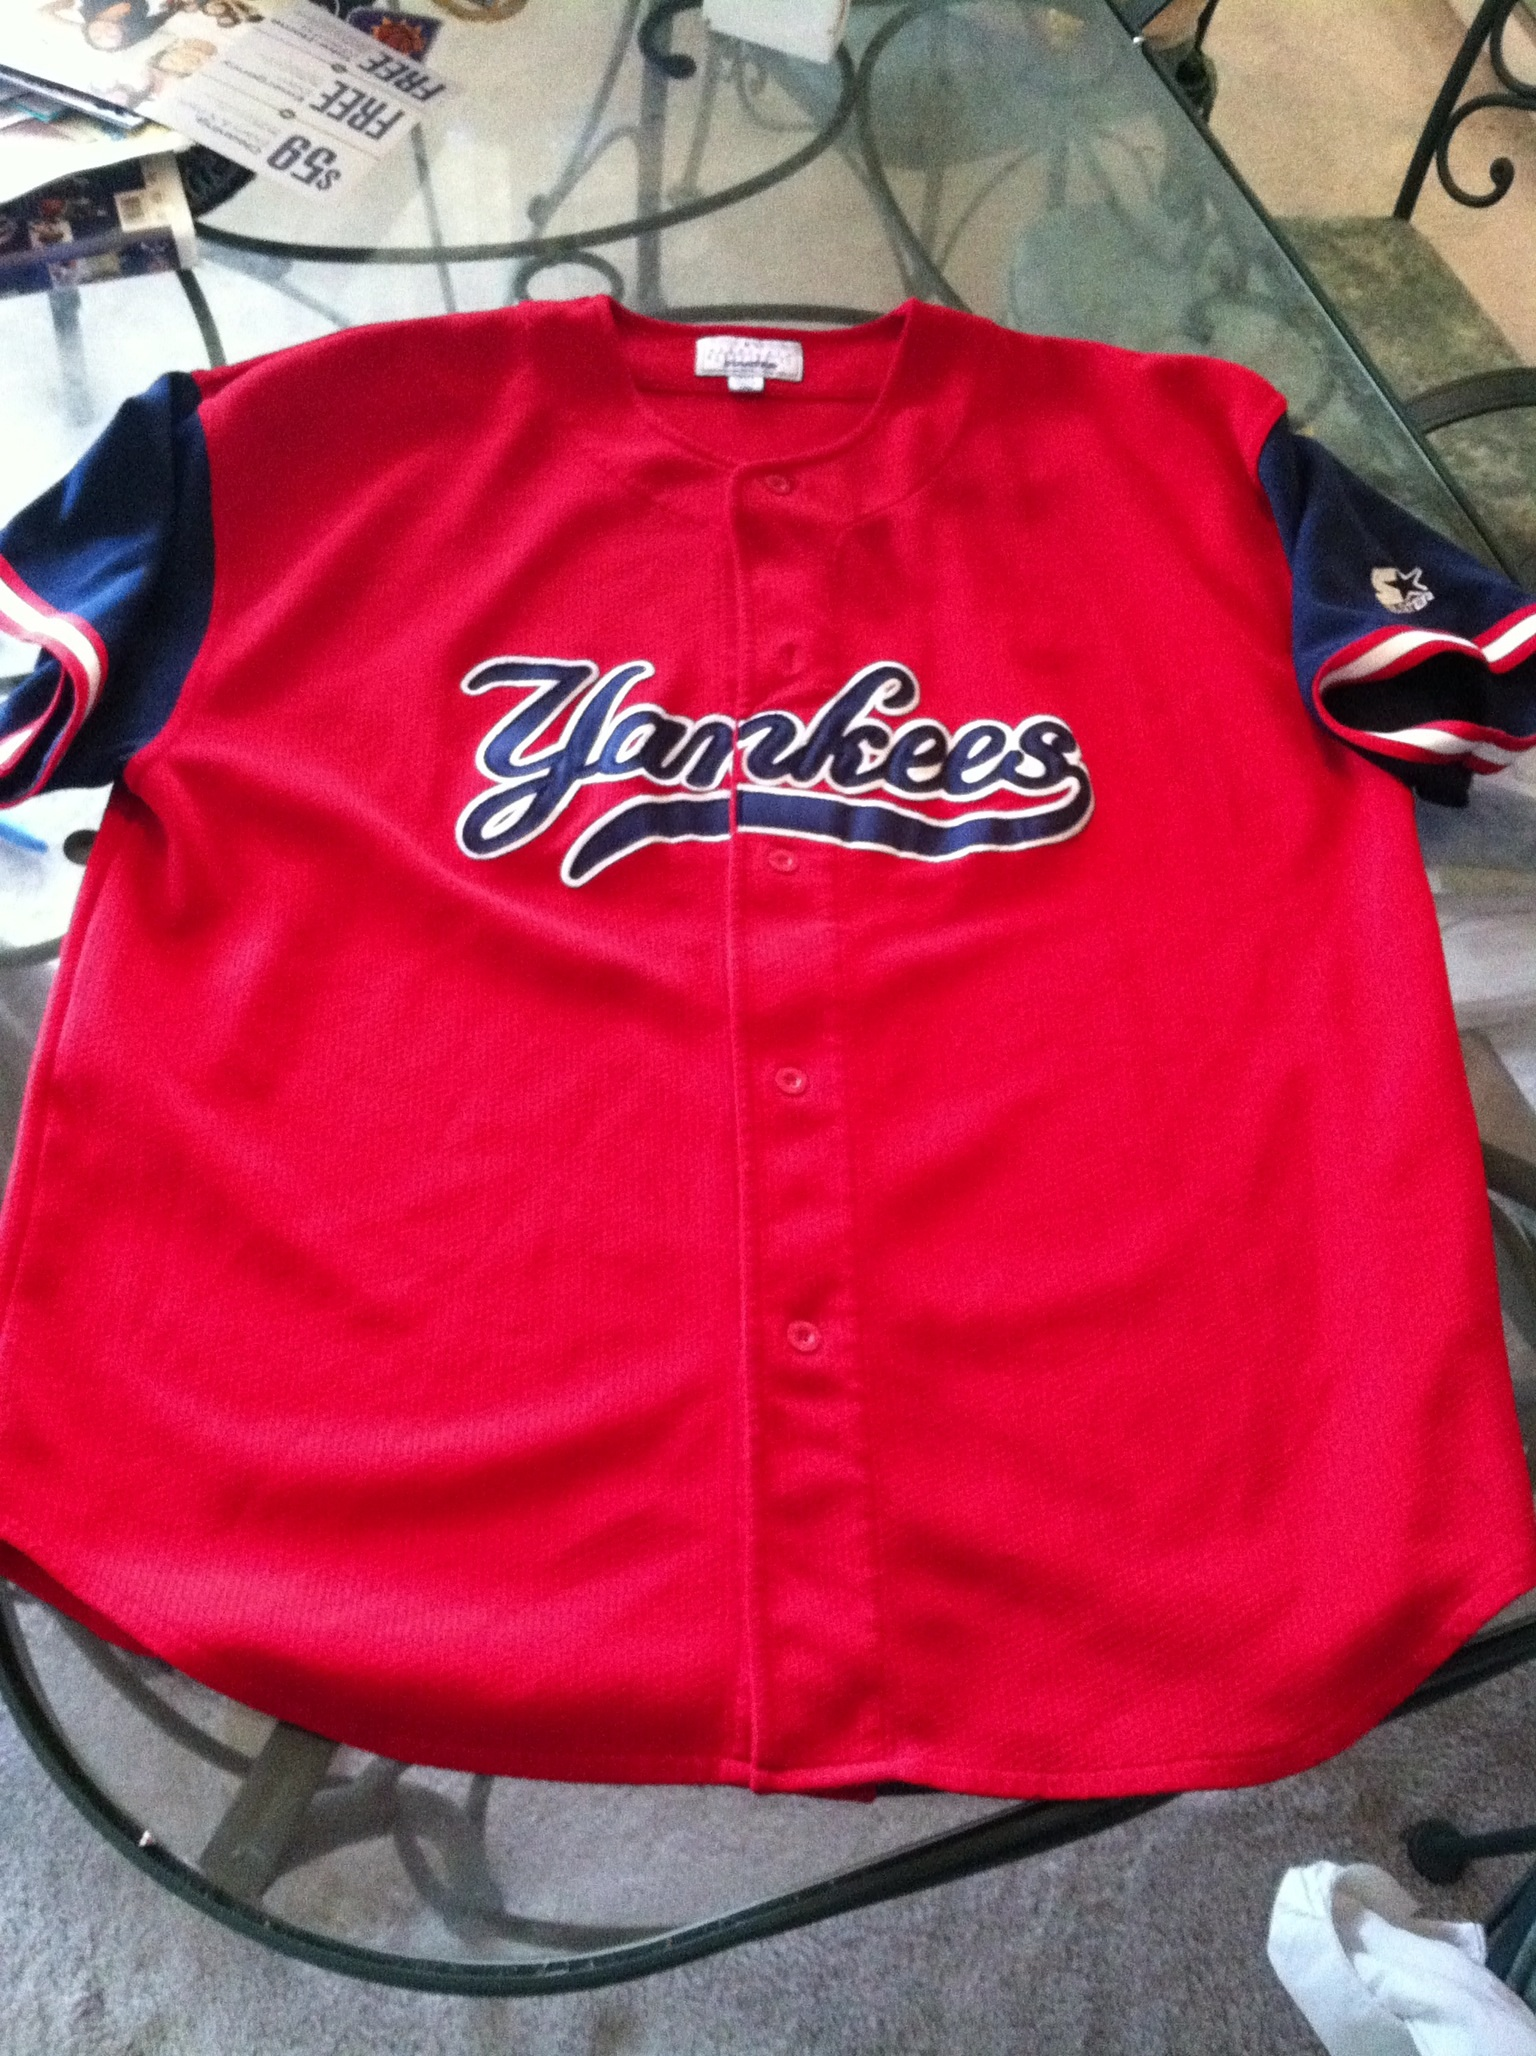 quality design f7ff2 ffb0d Yankees starter jersey from Thevintagemann